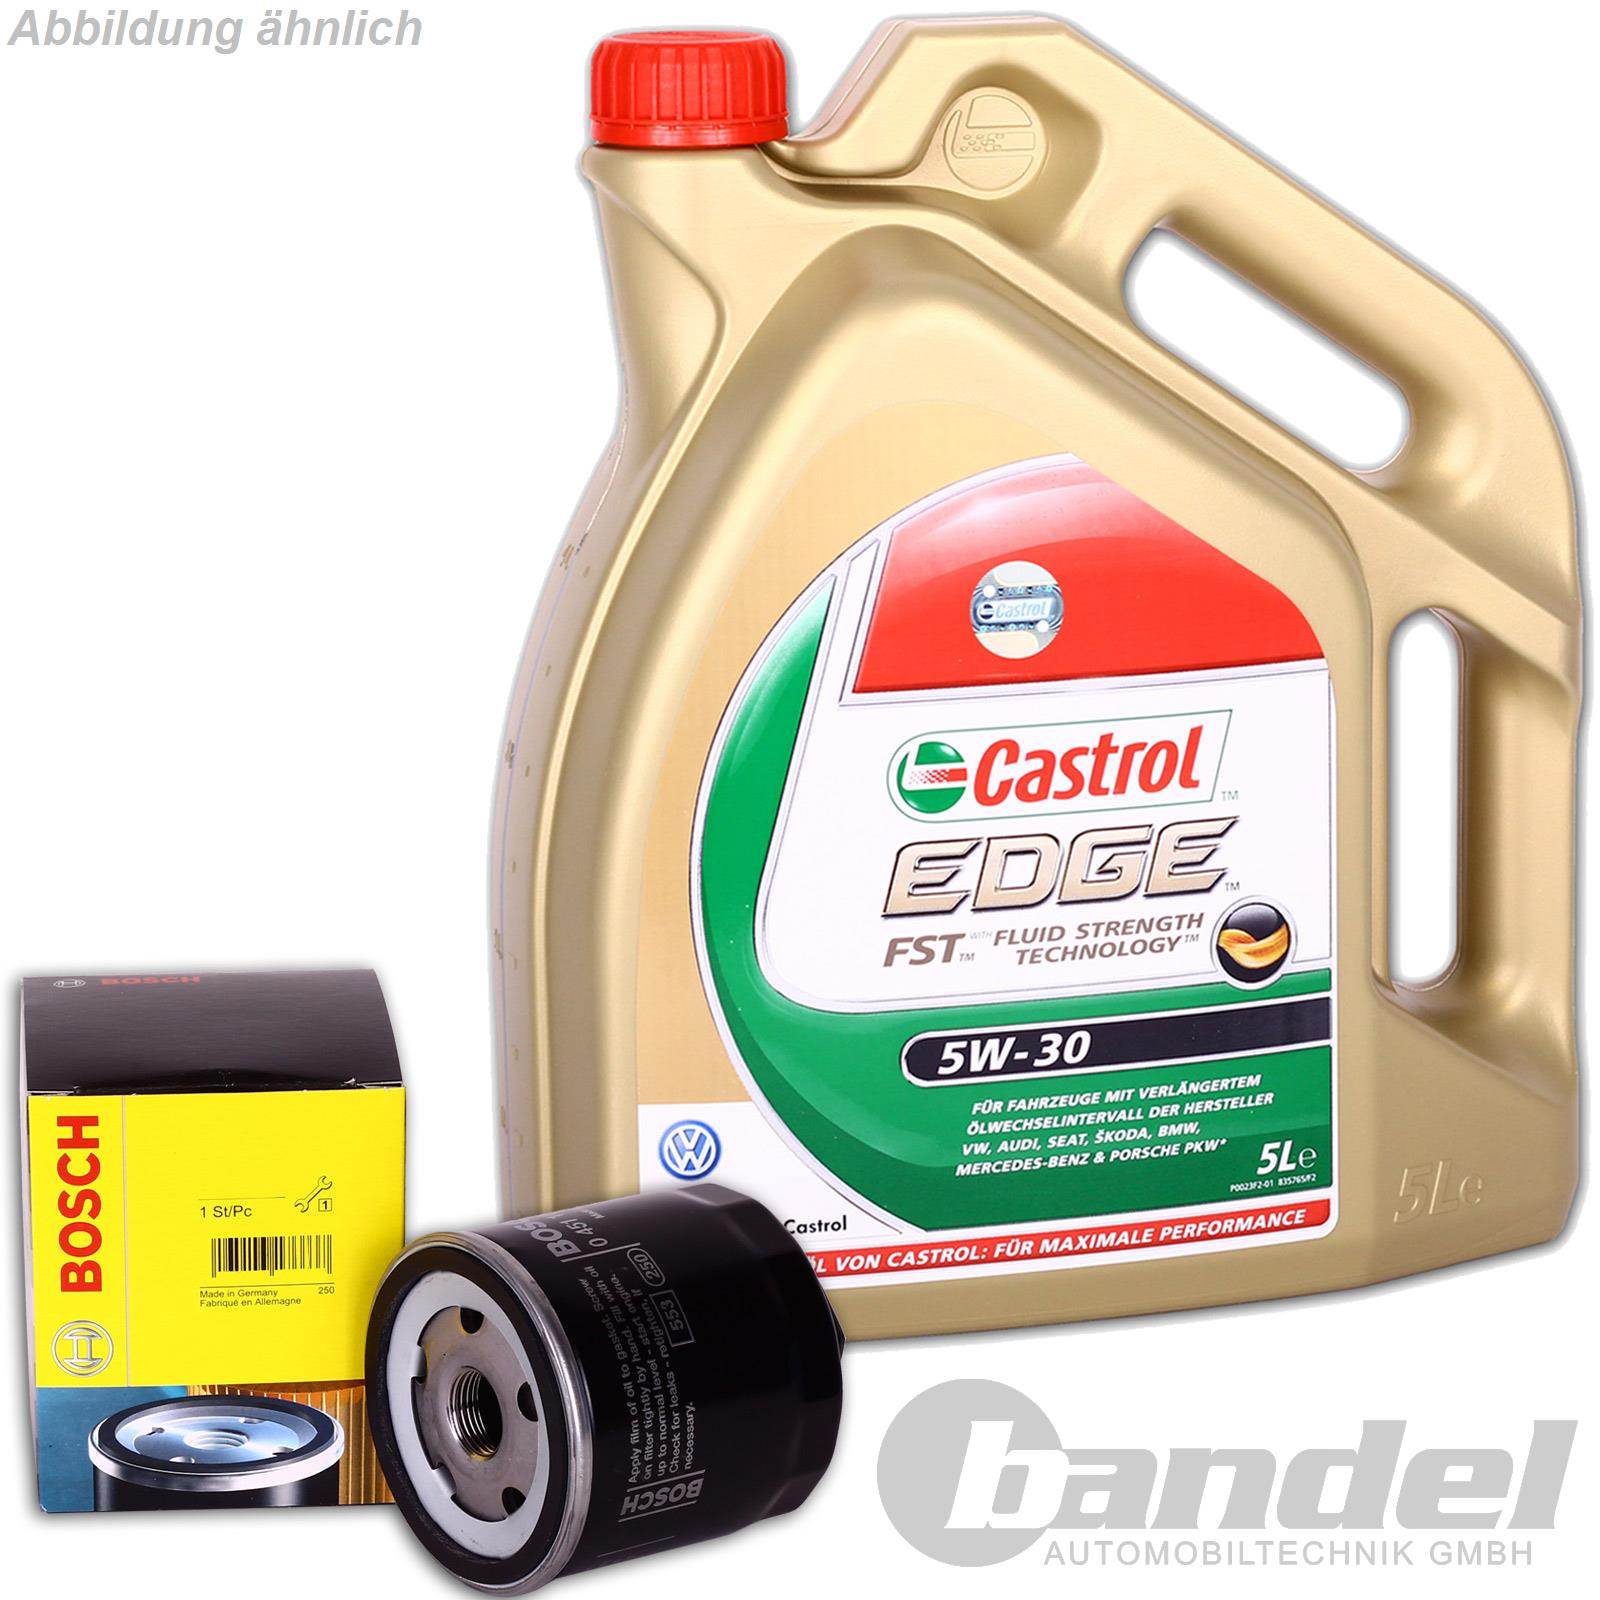 bosch lfilter 0451103314 5 liter motor l 5w 30 castrol. Black Bedroom Furniture Sets. Home Design Ideas